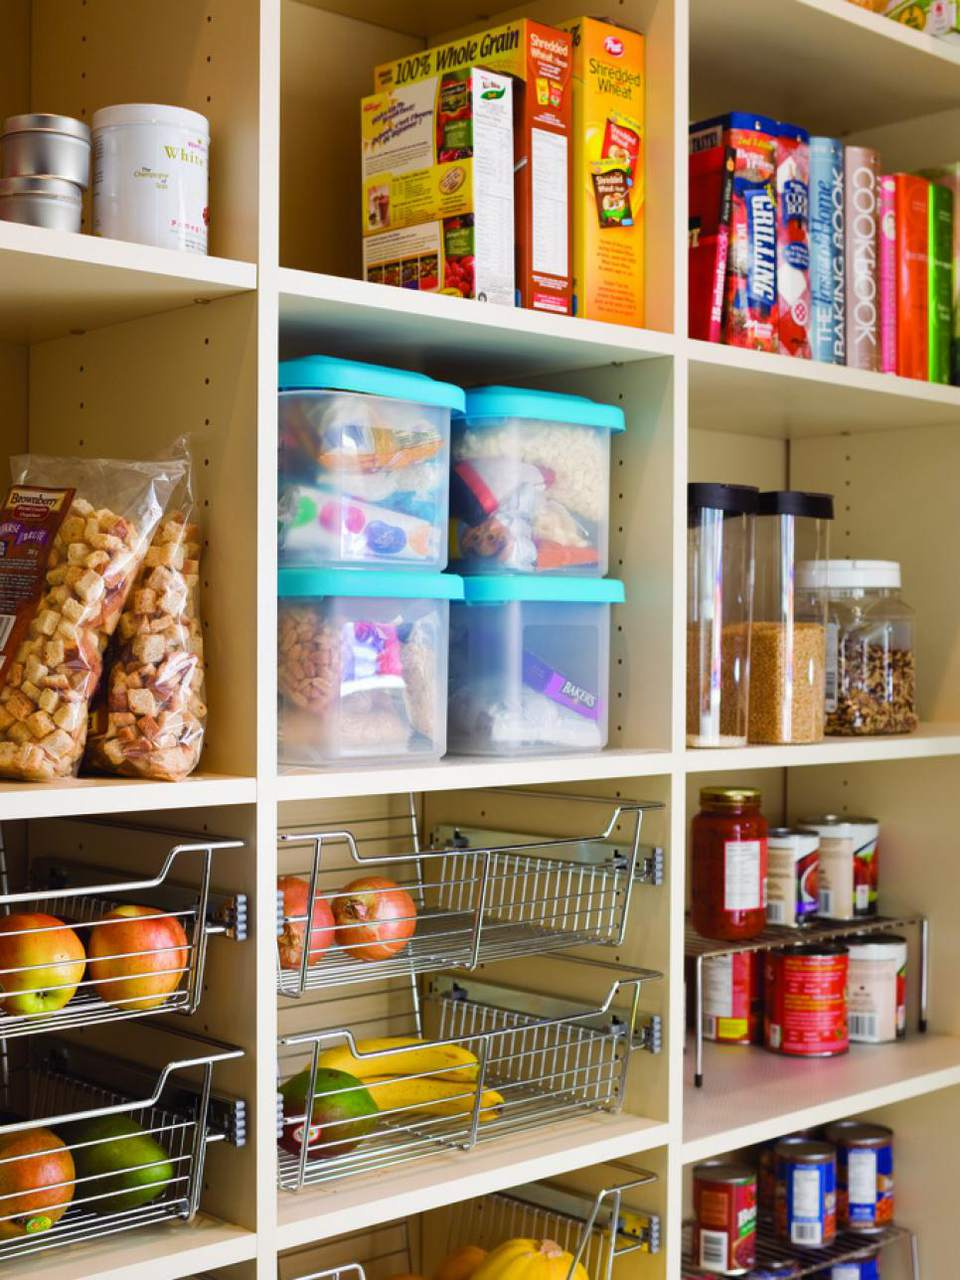 vidmar pantry products white of organizing corner pull dividers storage large ideas out cabinets full stanley great uk closet o costco nice spice trends organize drawer cabinet kitchen base organizers cupboard kerala easy wire for size marvelous organization diy shelves trays and slides roll shelving my